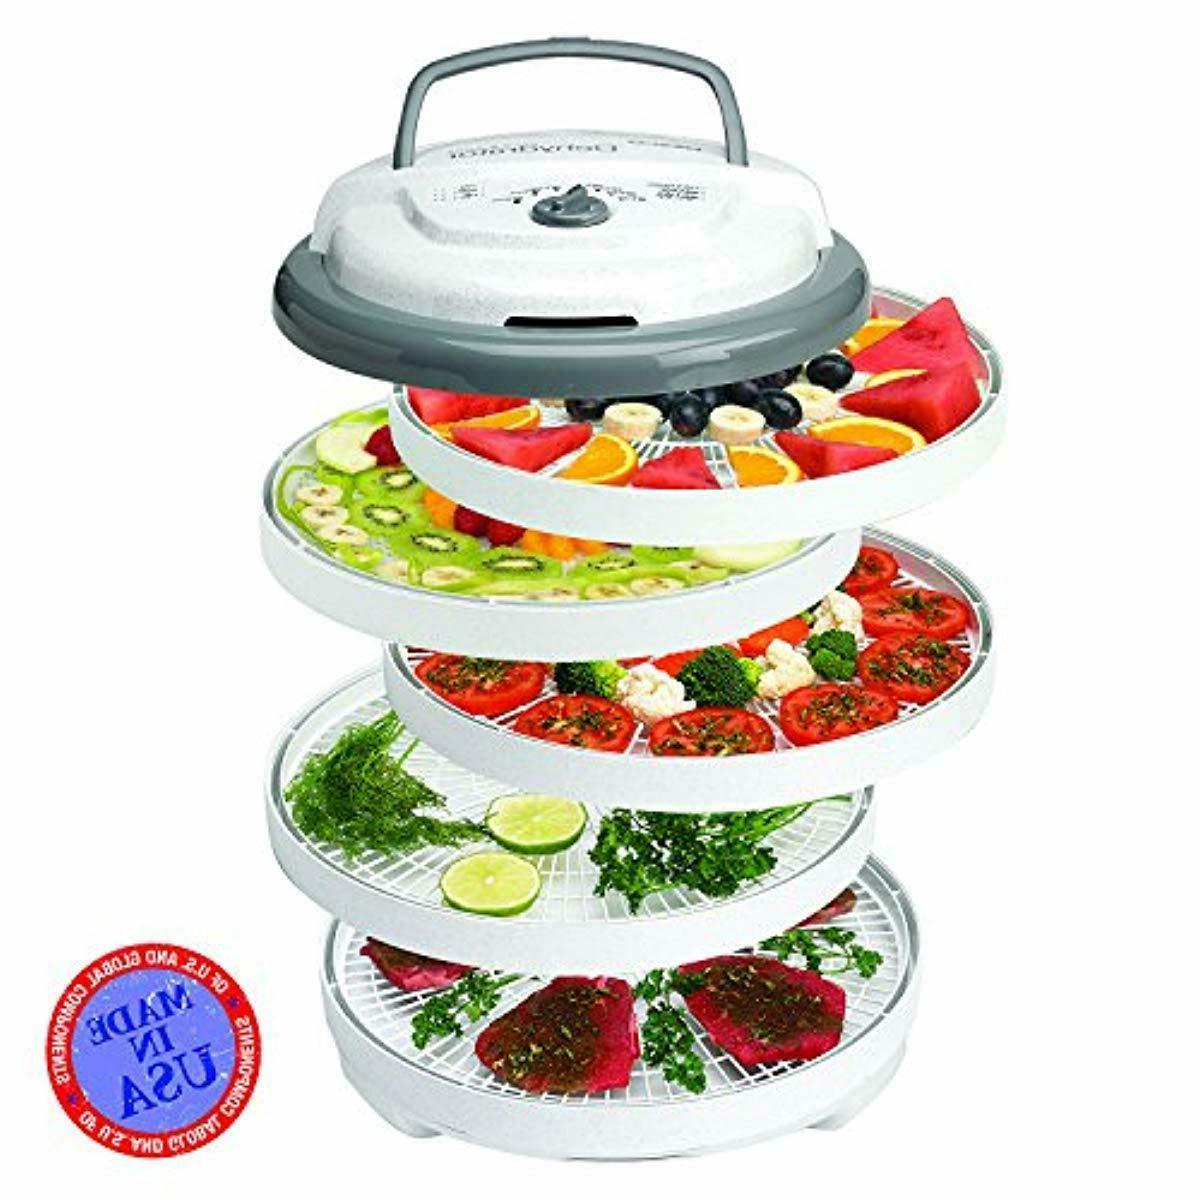 SALE NEW! Snackmaster Pro Dehydrator, Gray